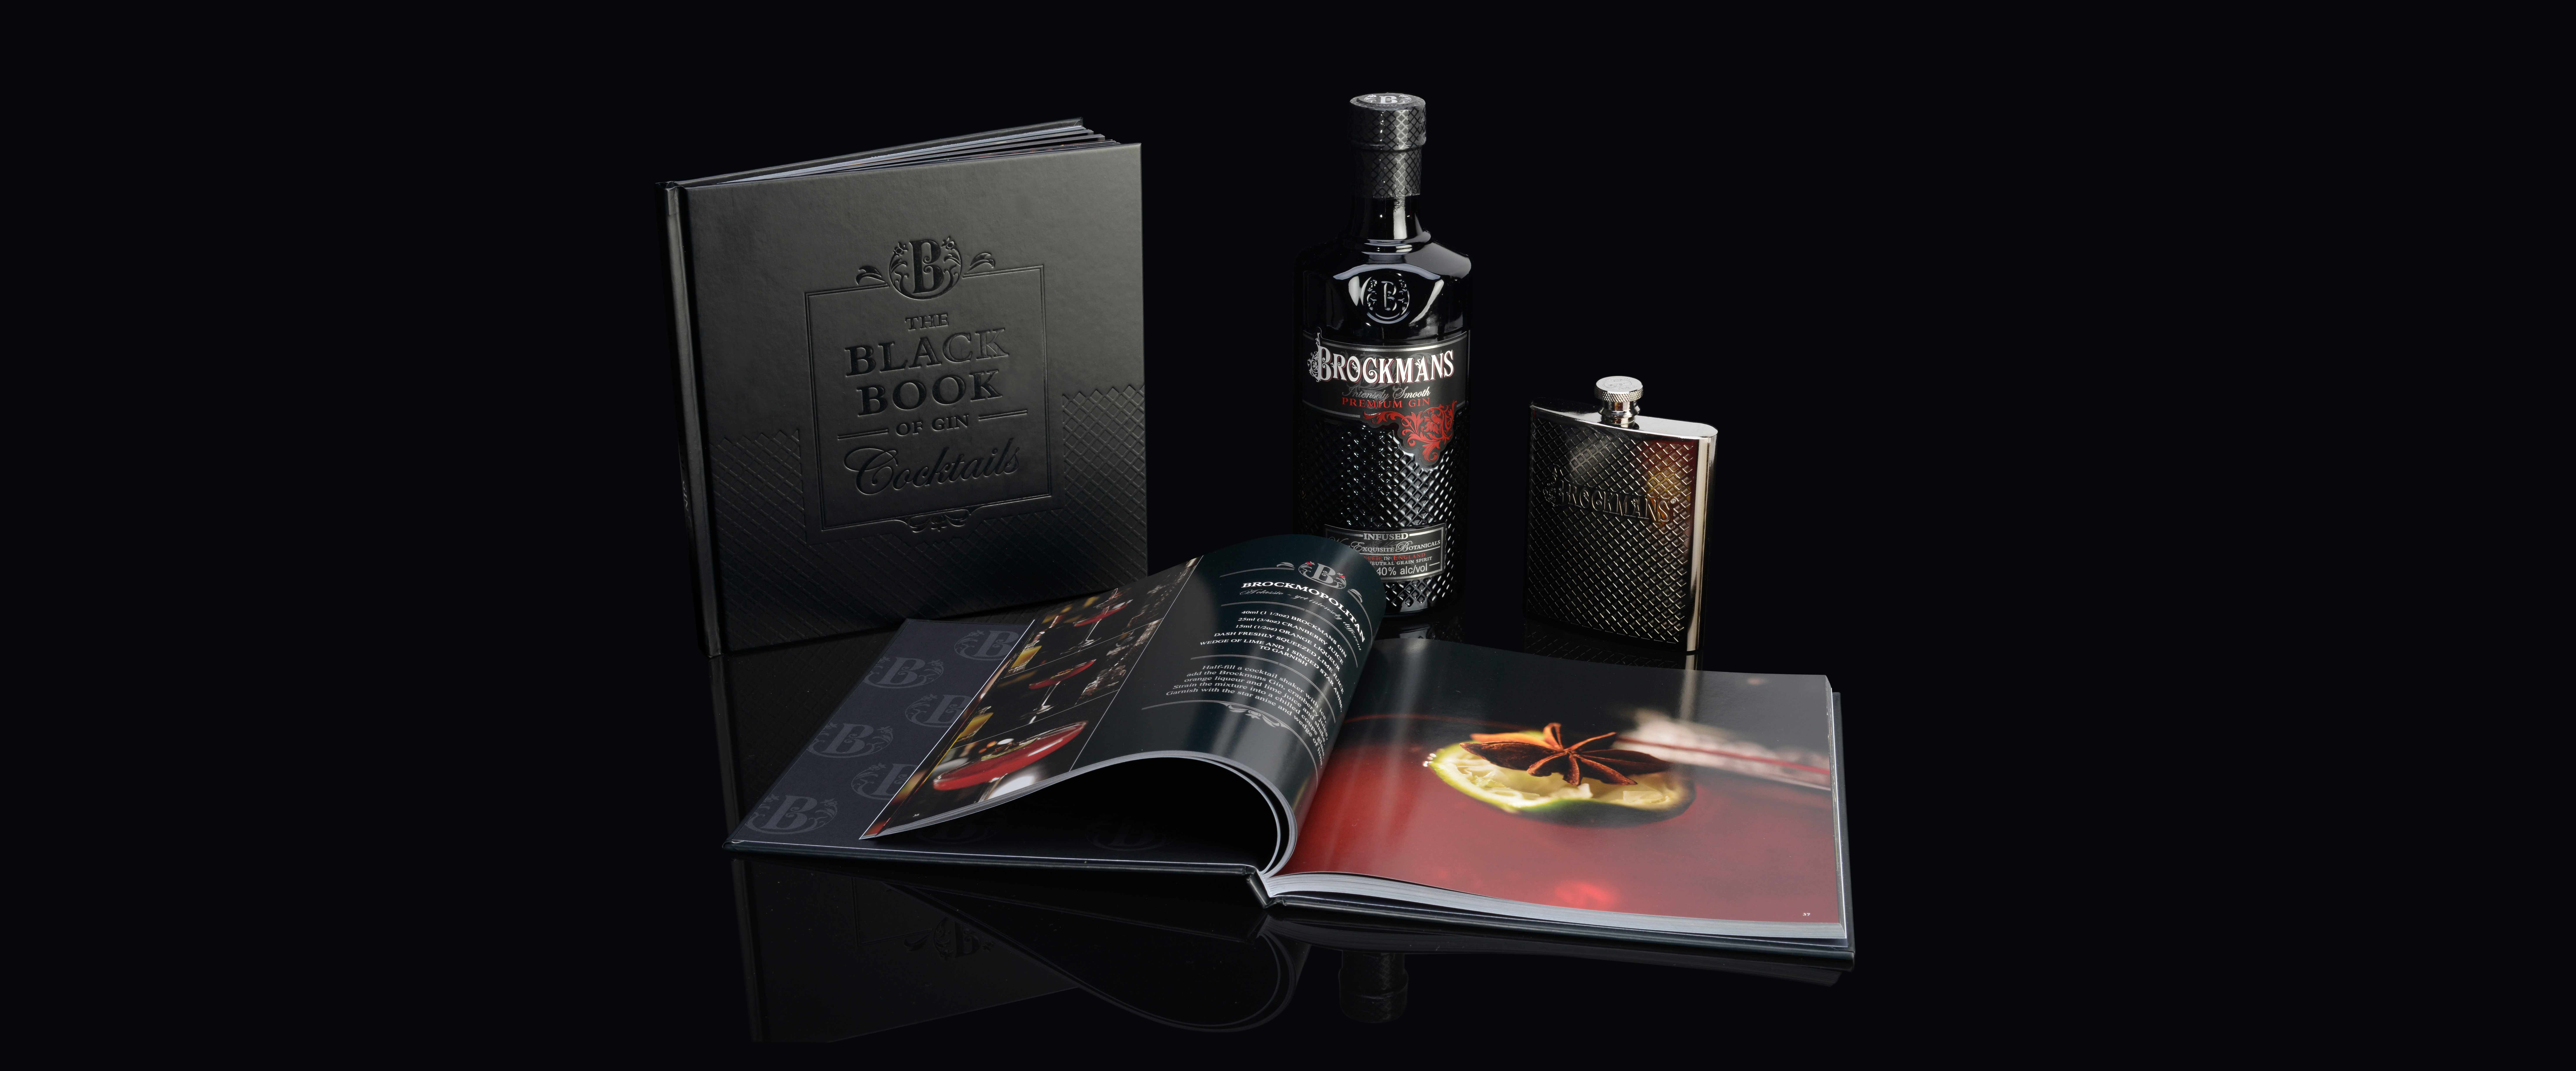 Win a limited edition copy of The Black Book of Gin Cocktails